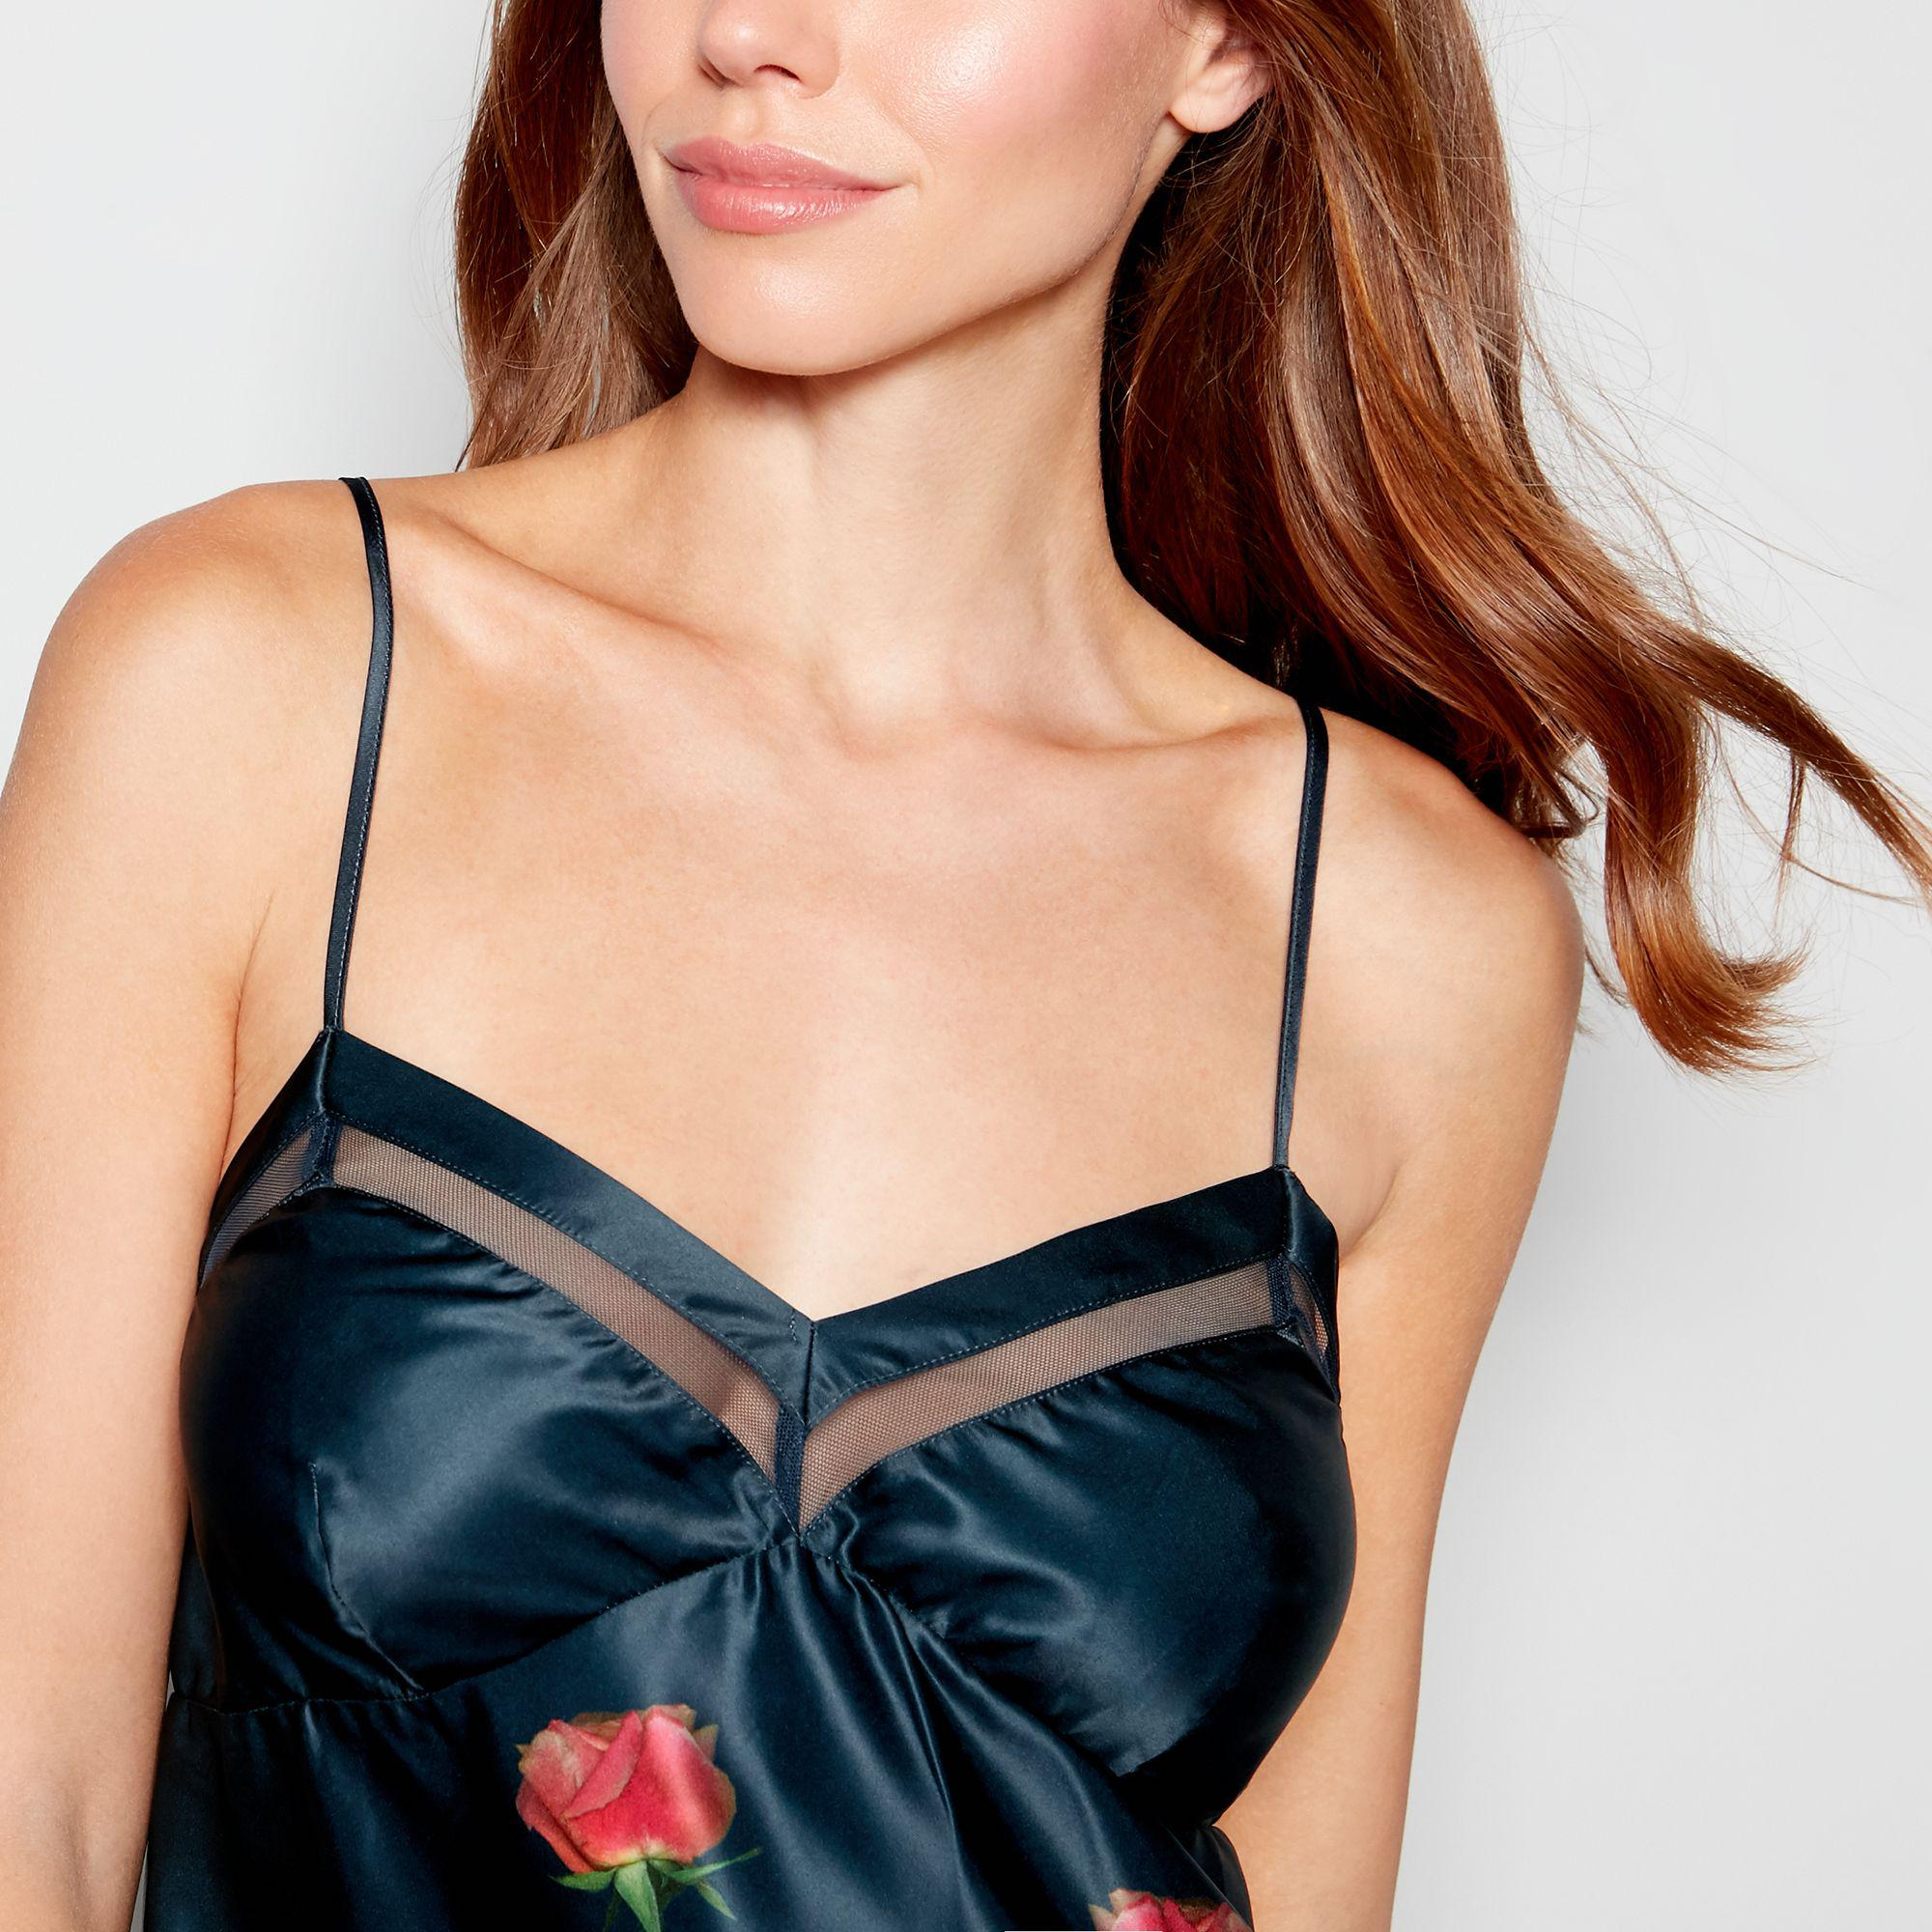 a35a22bbd11a1 Ted Baker - Blue Navy Floral Print Satin  kensington  Camisole Top - Lyst.  View fullscreen